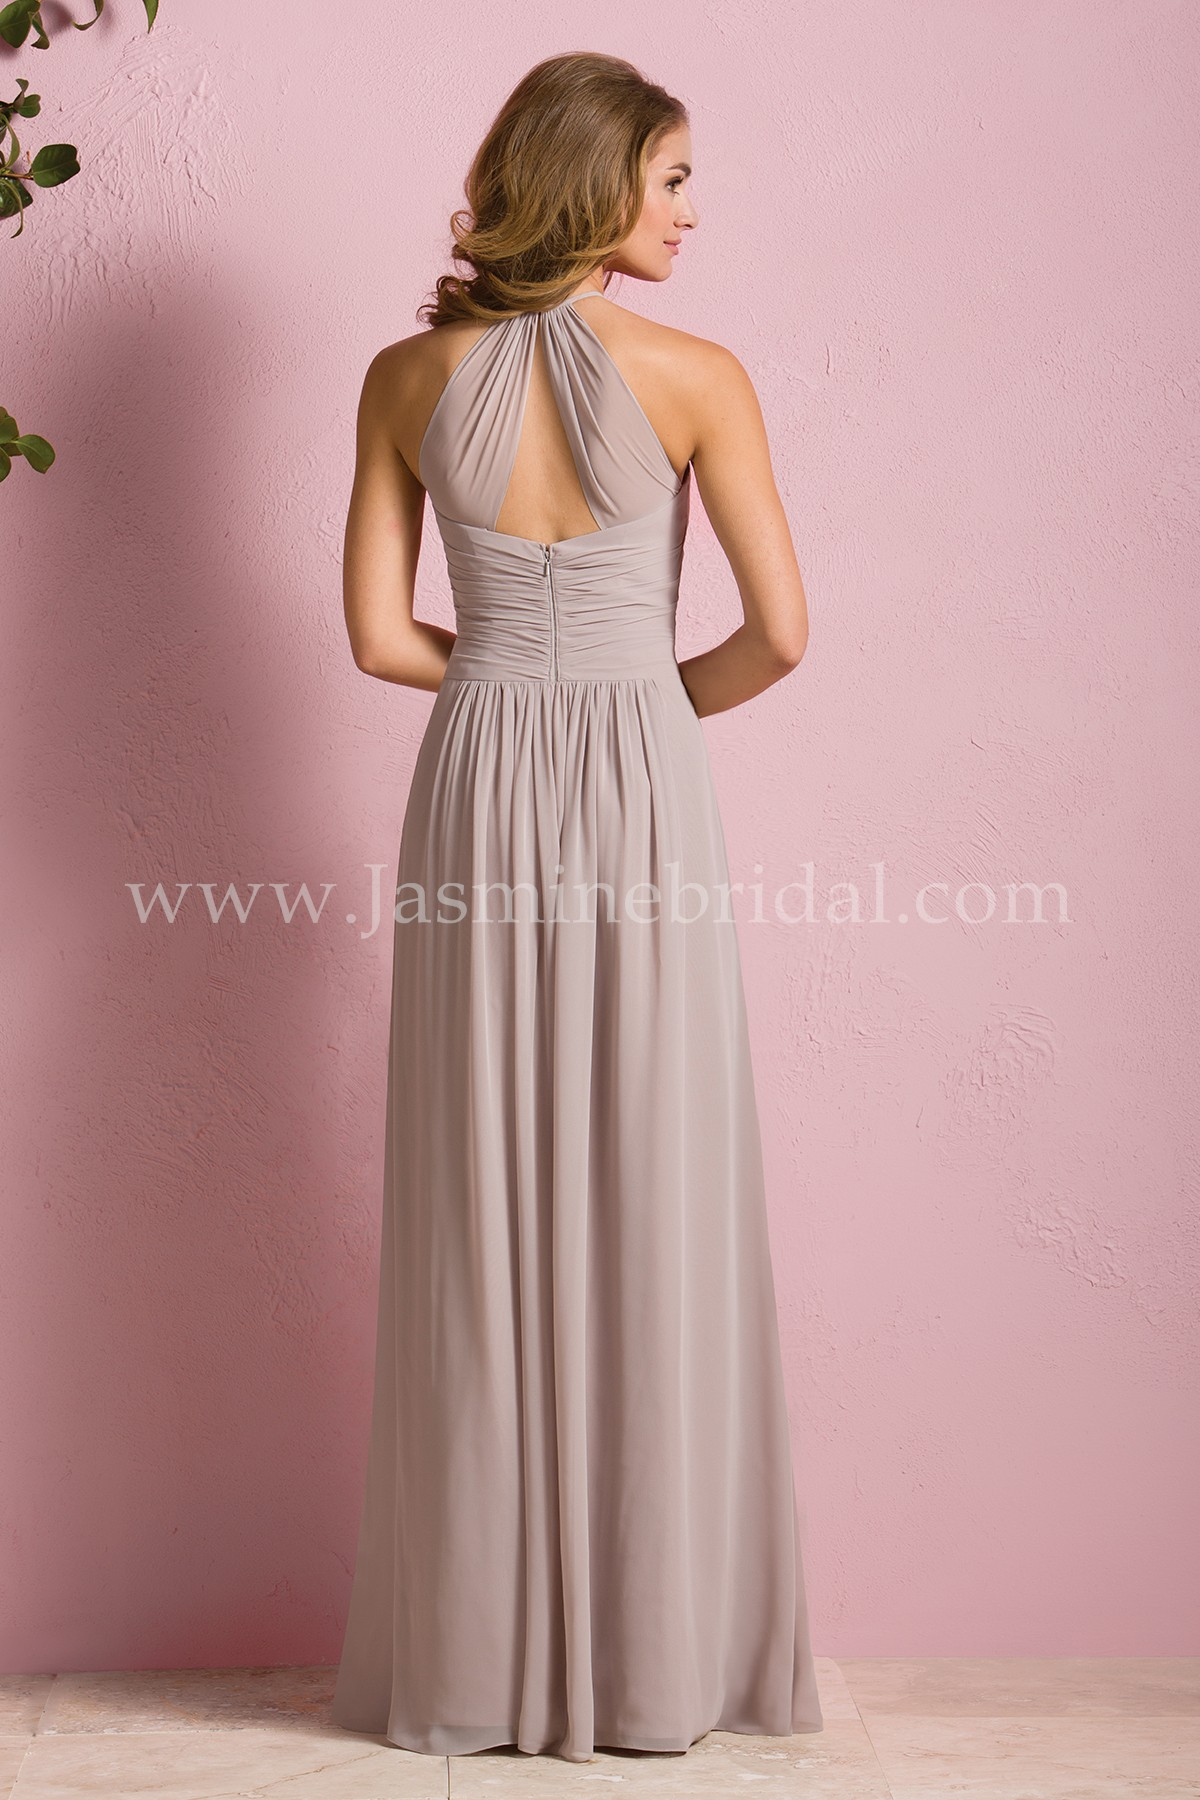 bridesmaid-dresses-B173057-B